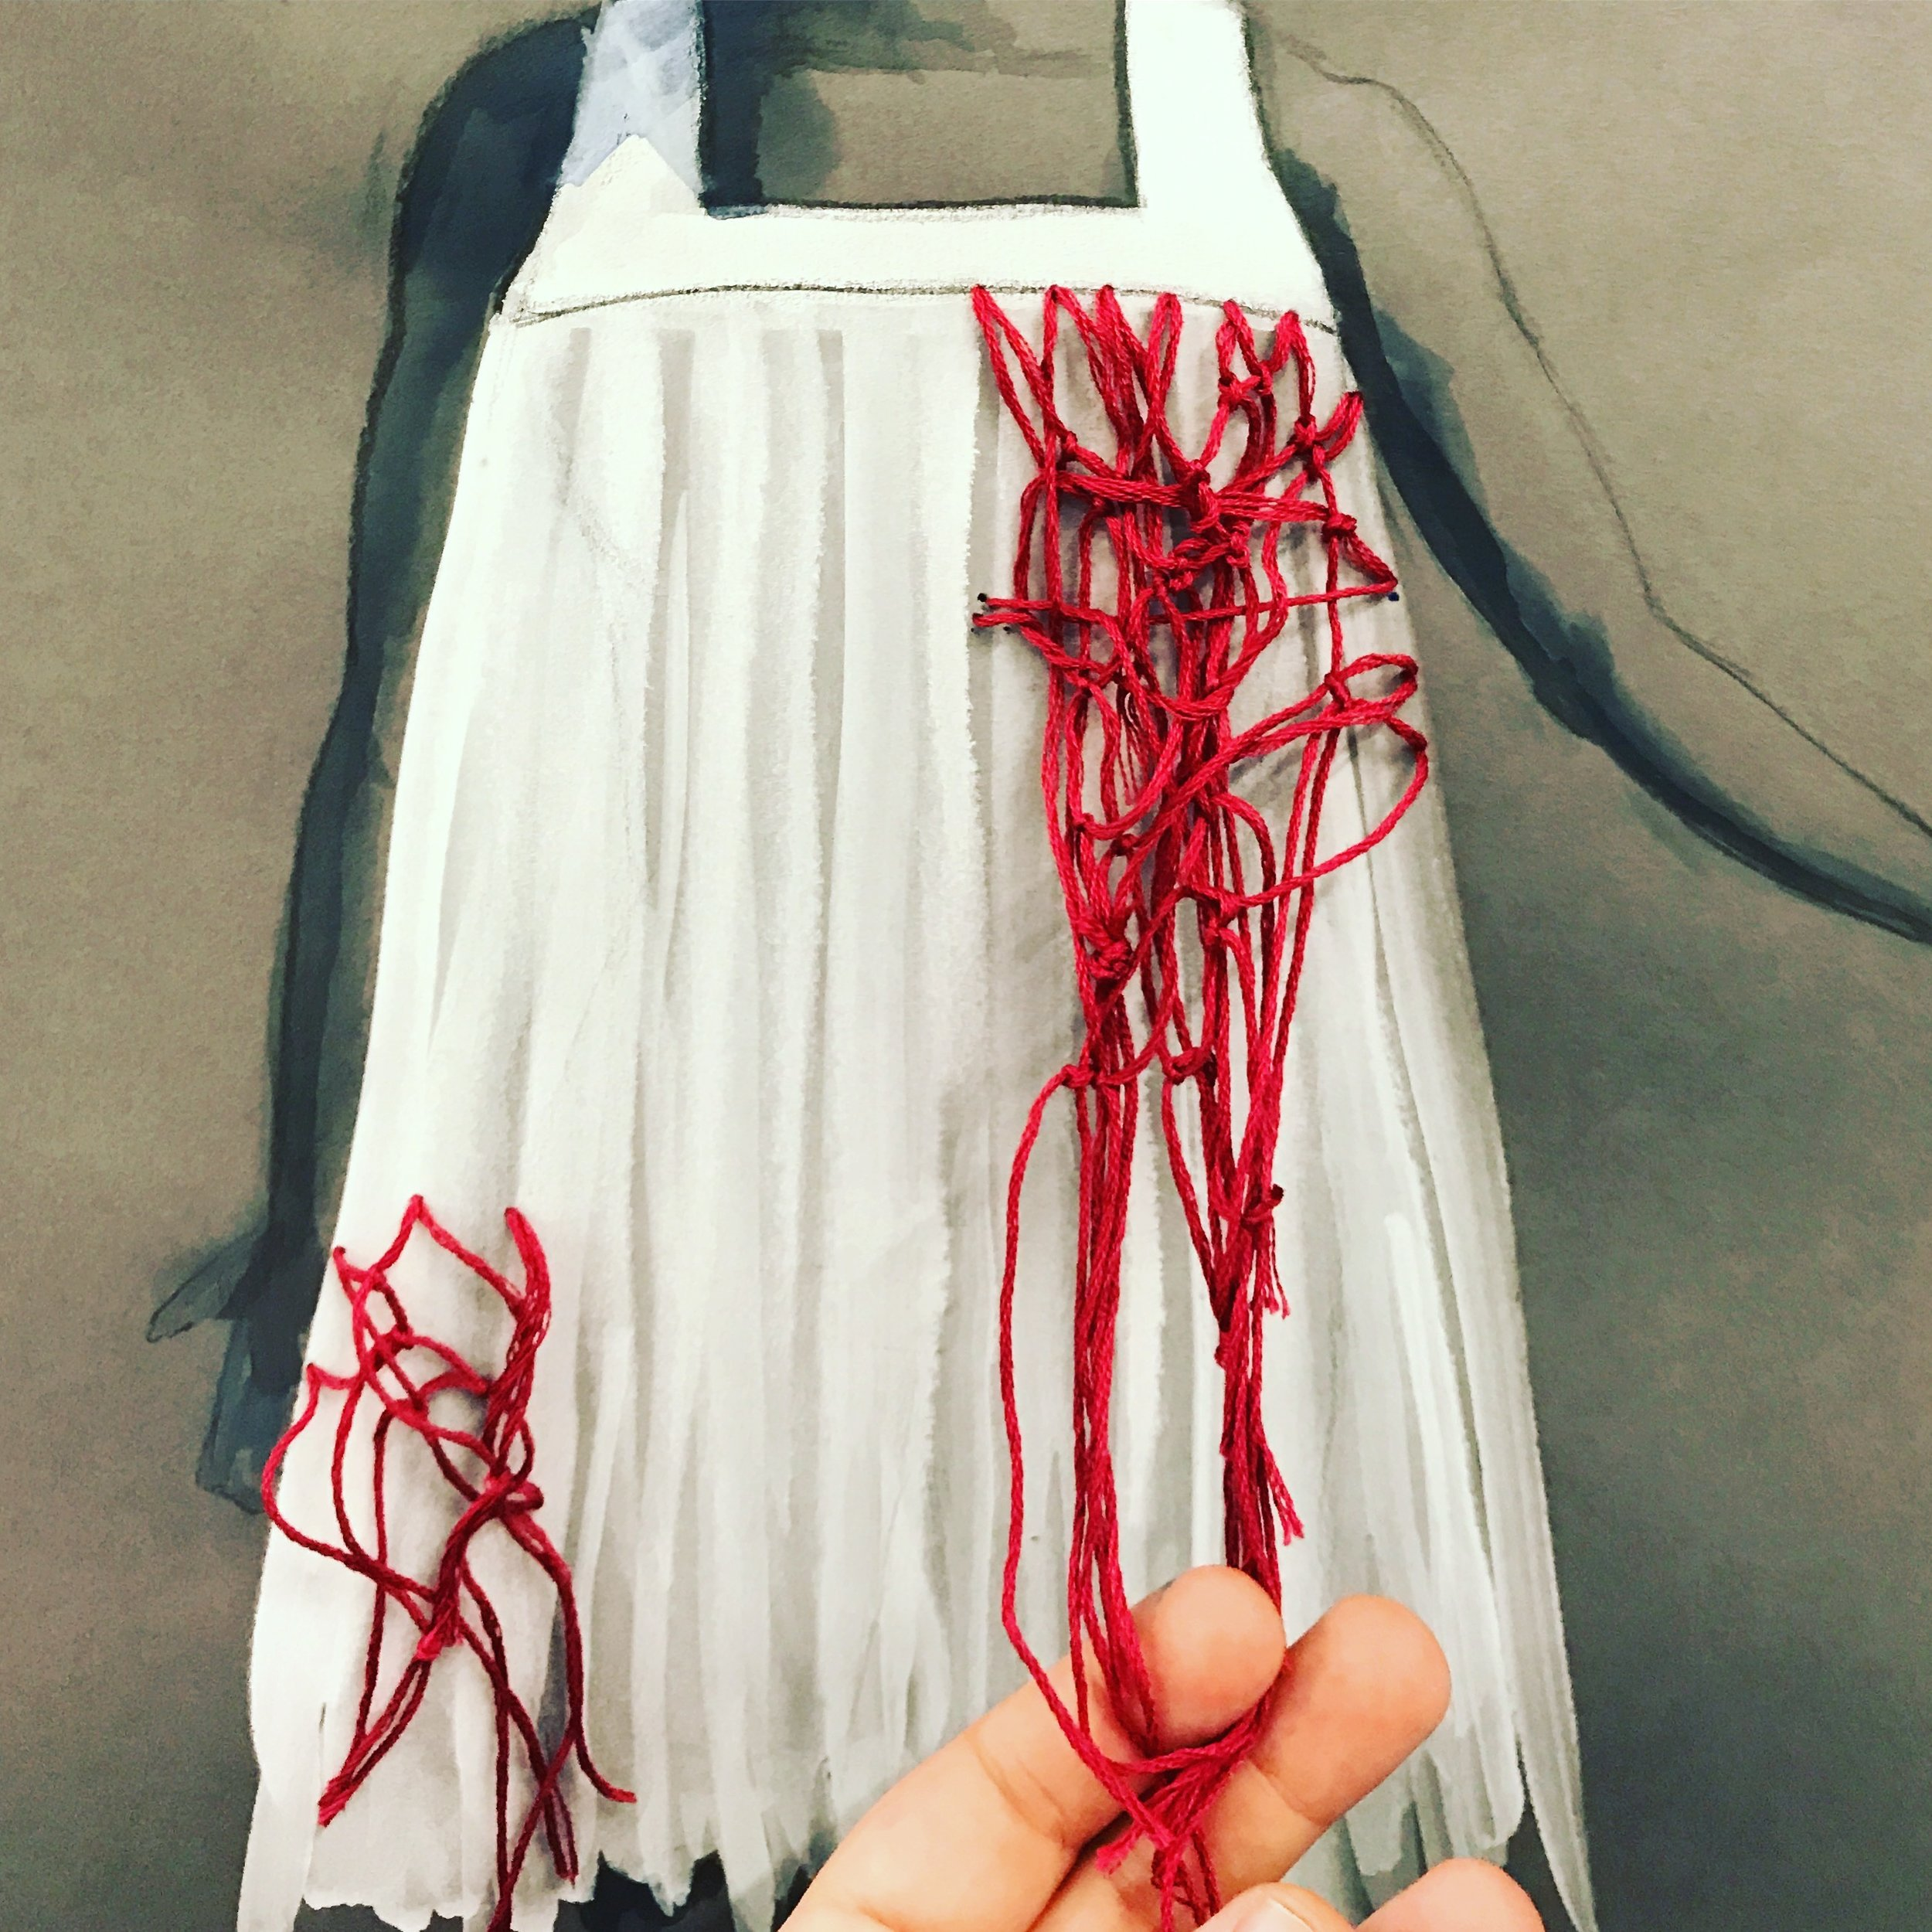 """Detail of Rendering for """"Norns and Norns""""- University of Washington MFA Dance Concert, Spring 2018  (Charcoal, Ink, Red Embroidery Floss)"""